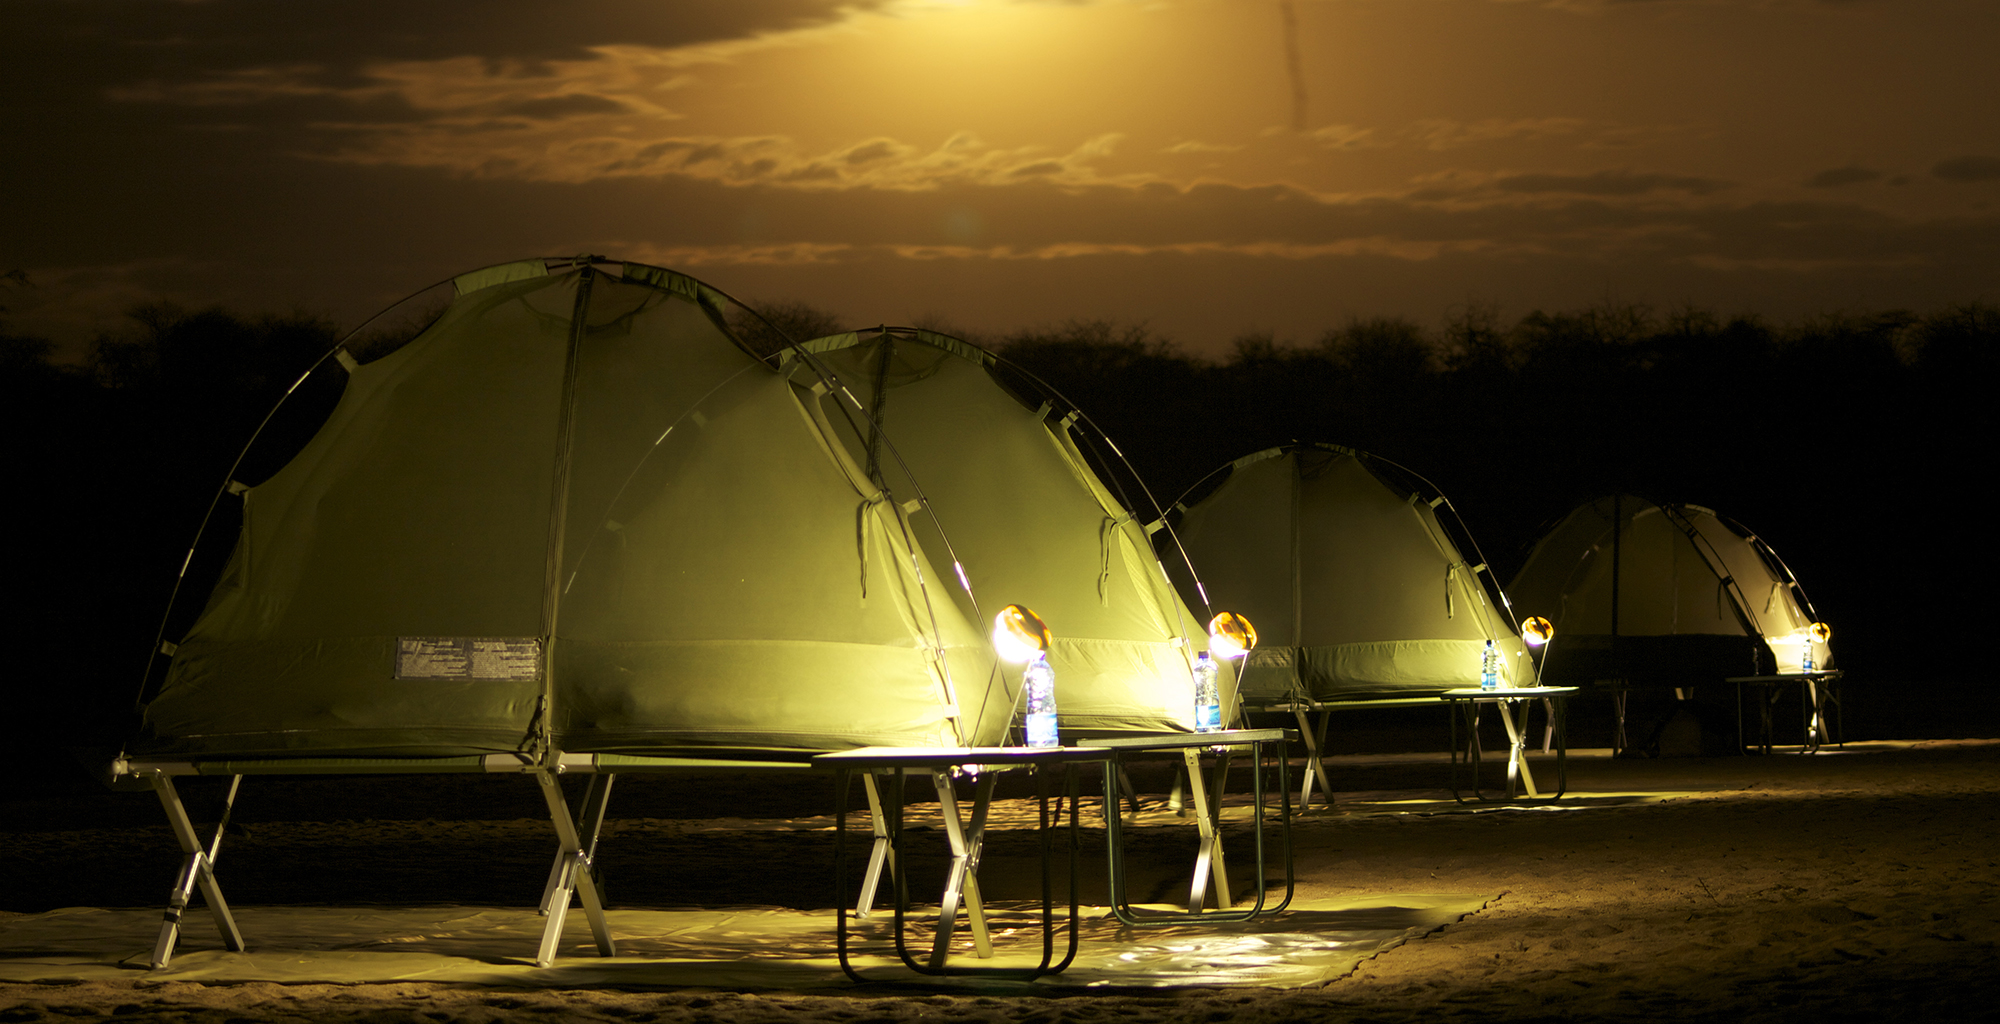 Kenya-Lattitude-Adventures-Fly-Camp